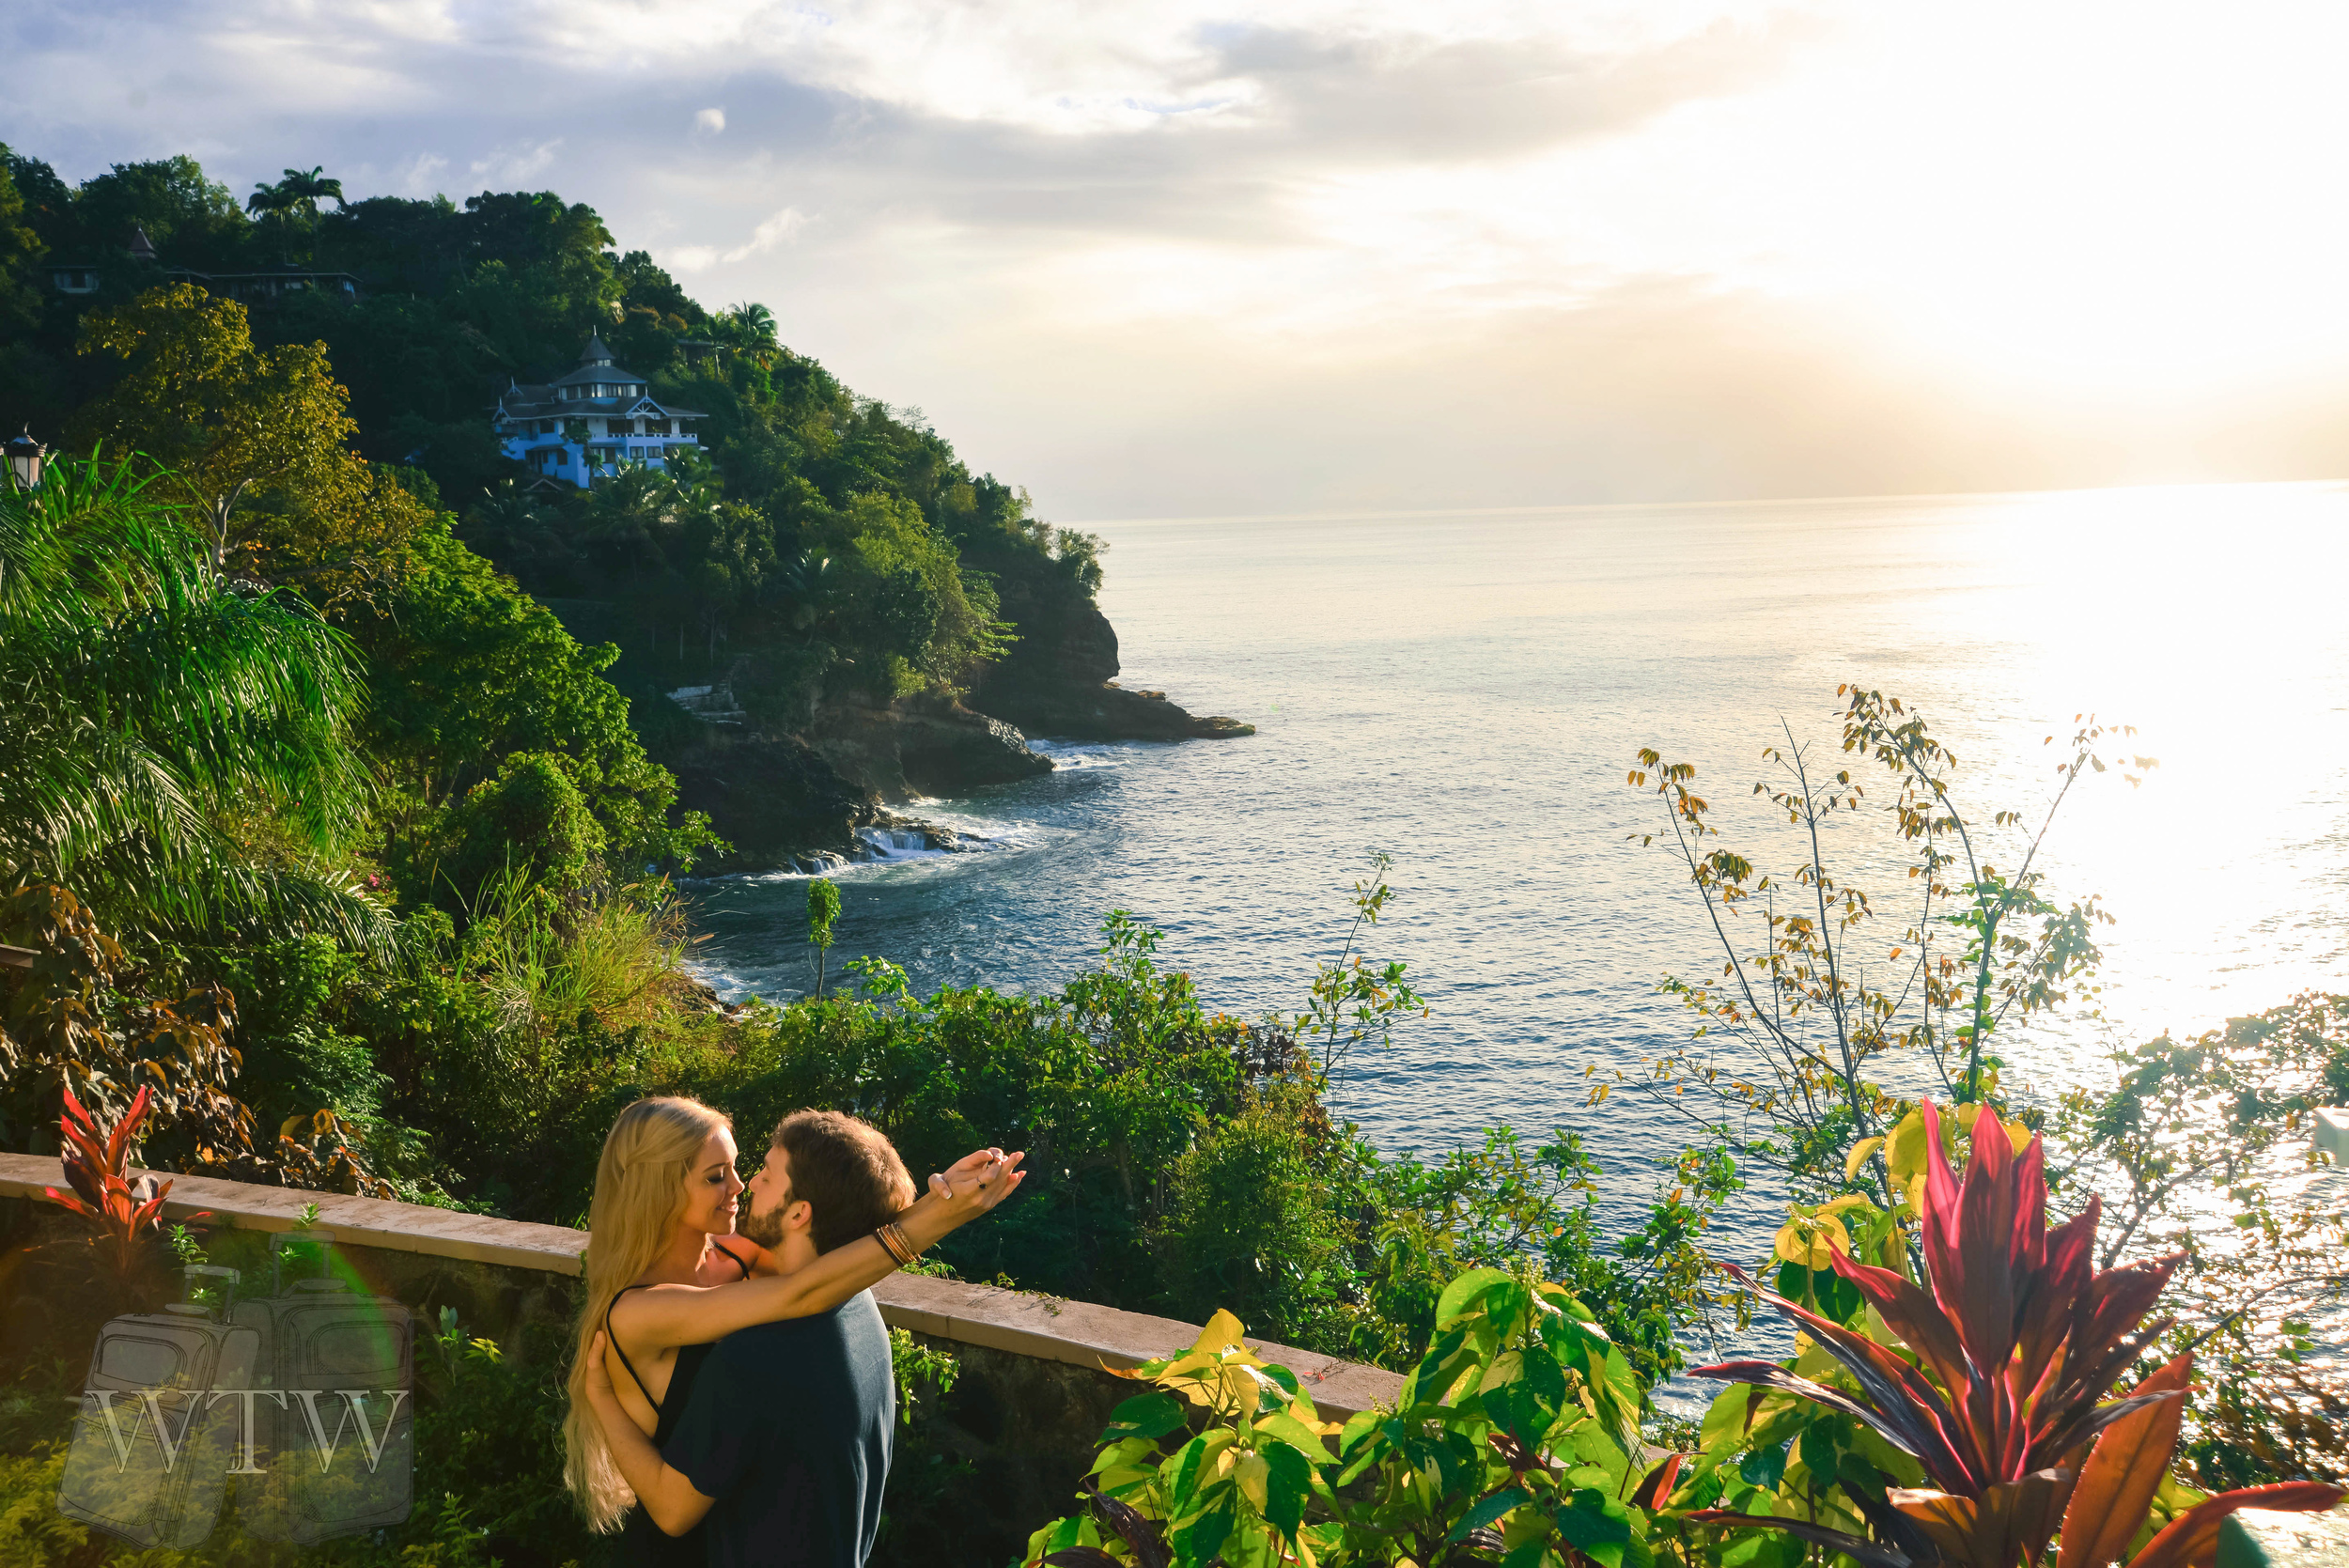 Lush bluffs and rocky cliffs give St Lucia's beaches exotic variety and views second to none!